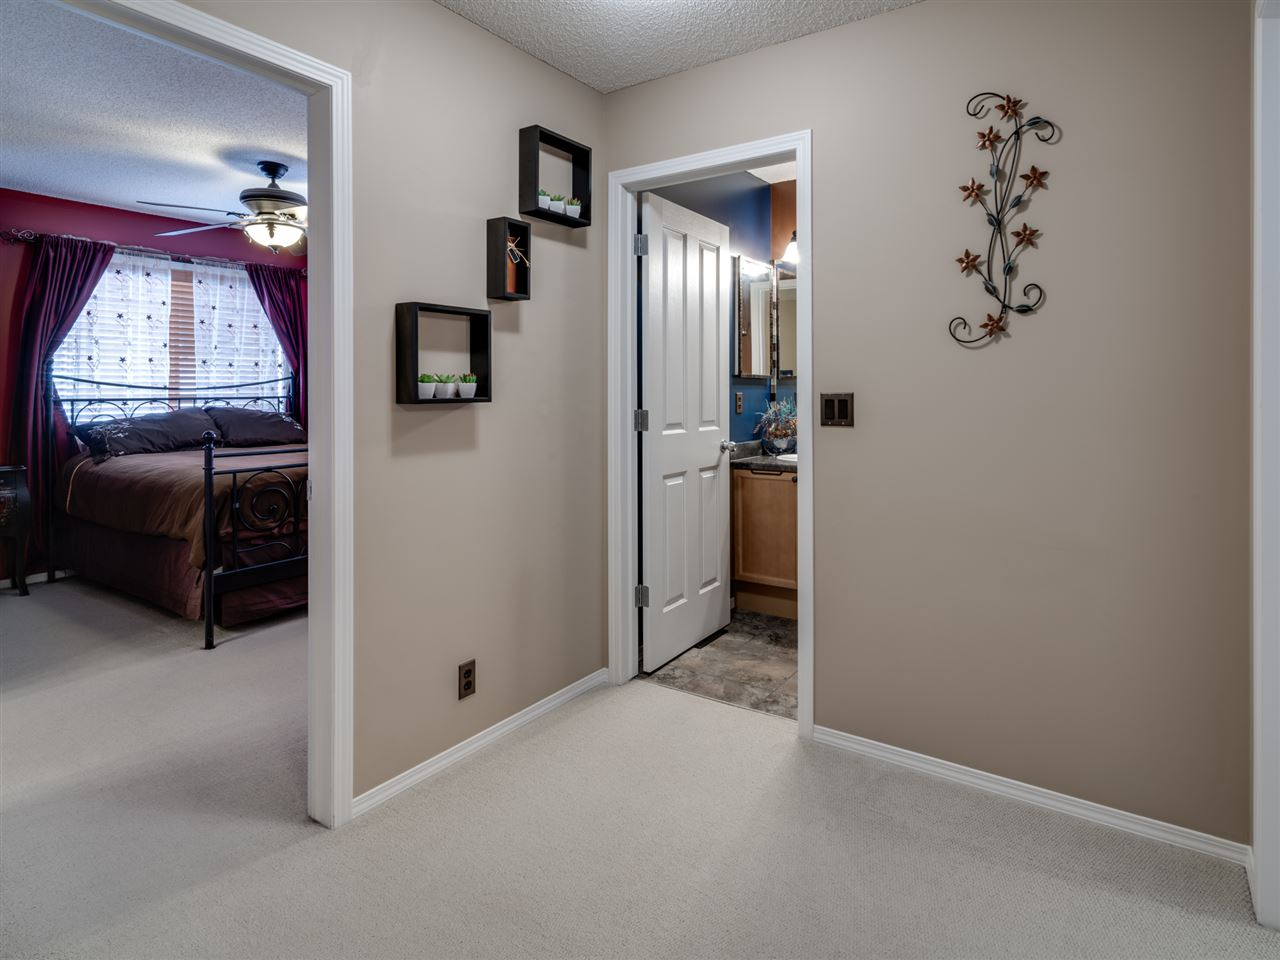 For Sale: 142 - 5604 199 Street, Edmonton, AB | 2 Bed, 2 Bath Condo for $249,900. See 20 photos!